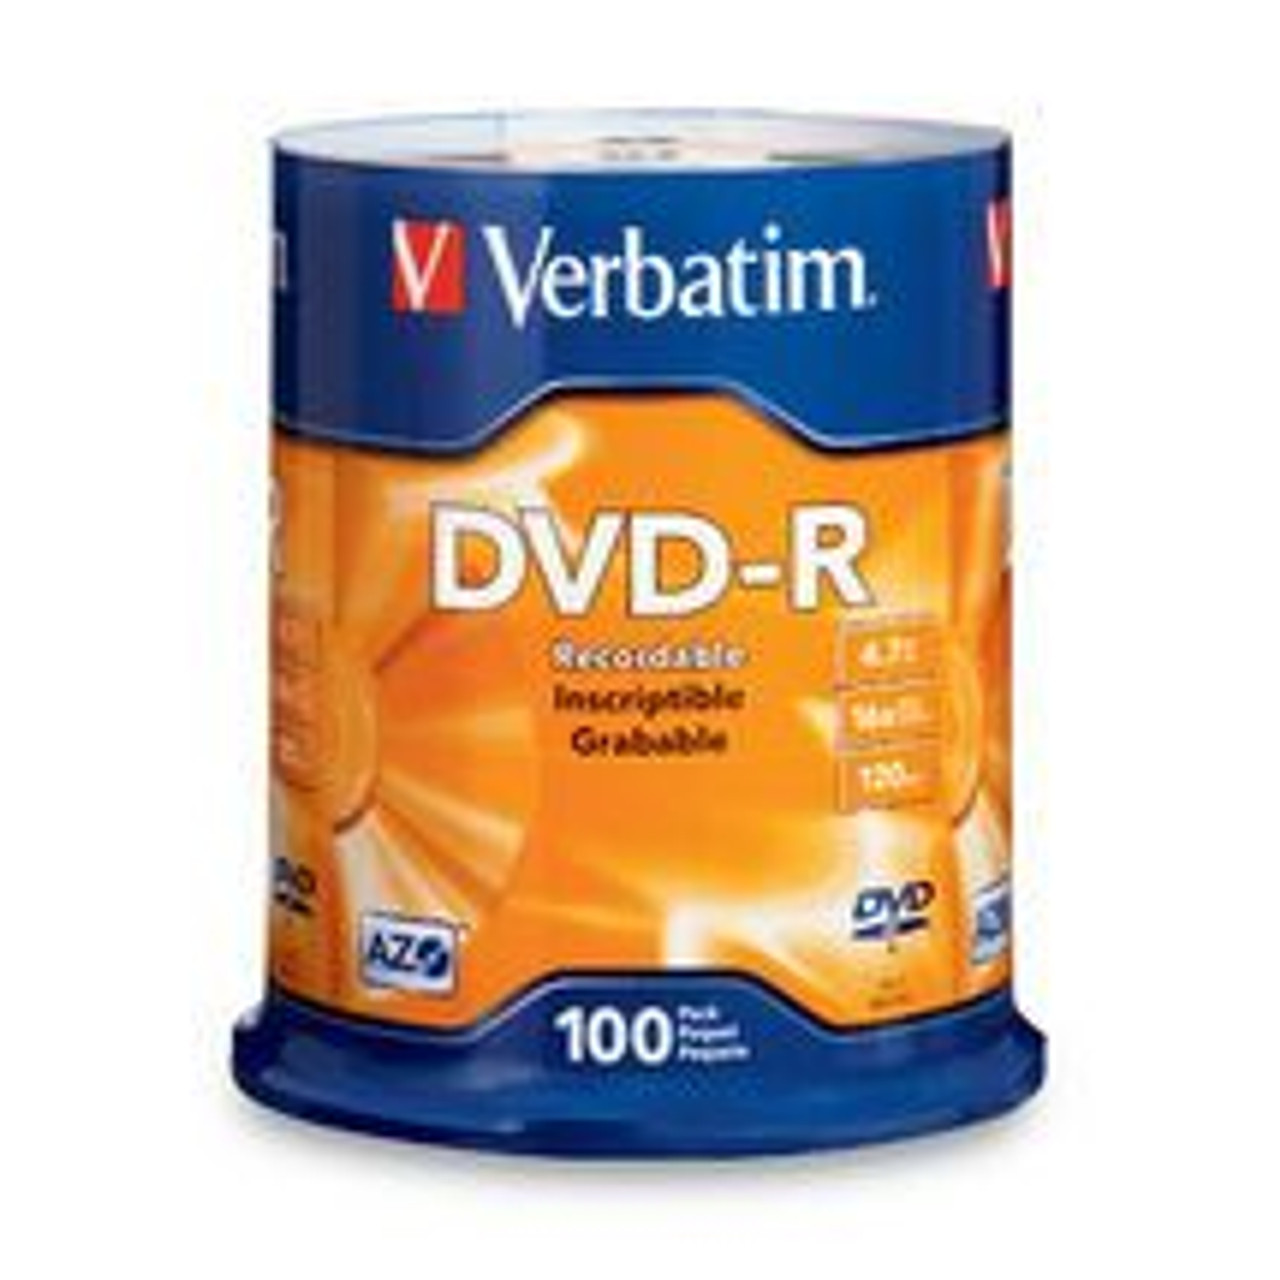 Image for Verbatim DVD-R 4.7GB 100Pk Spindle 16x (95102) CX Computer Superstore